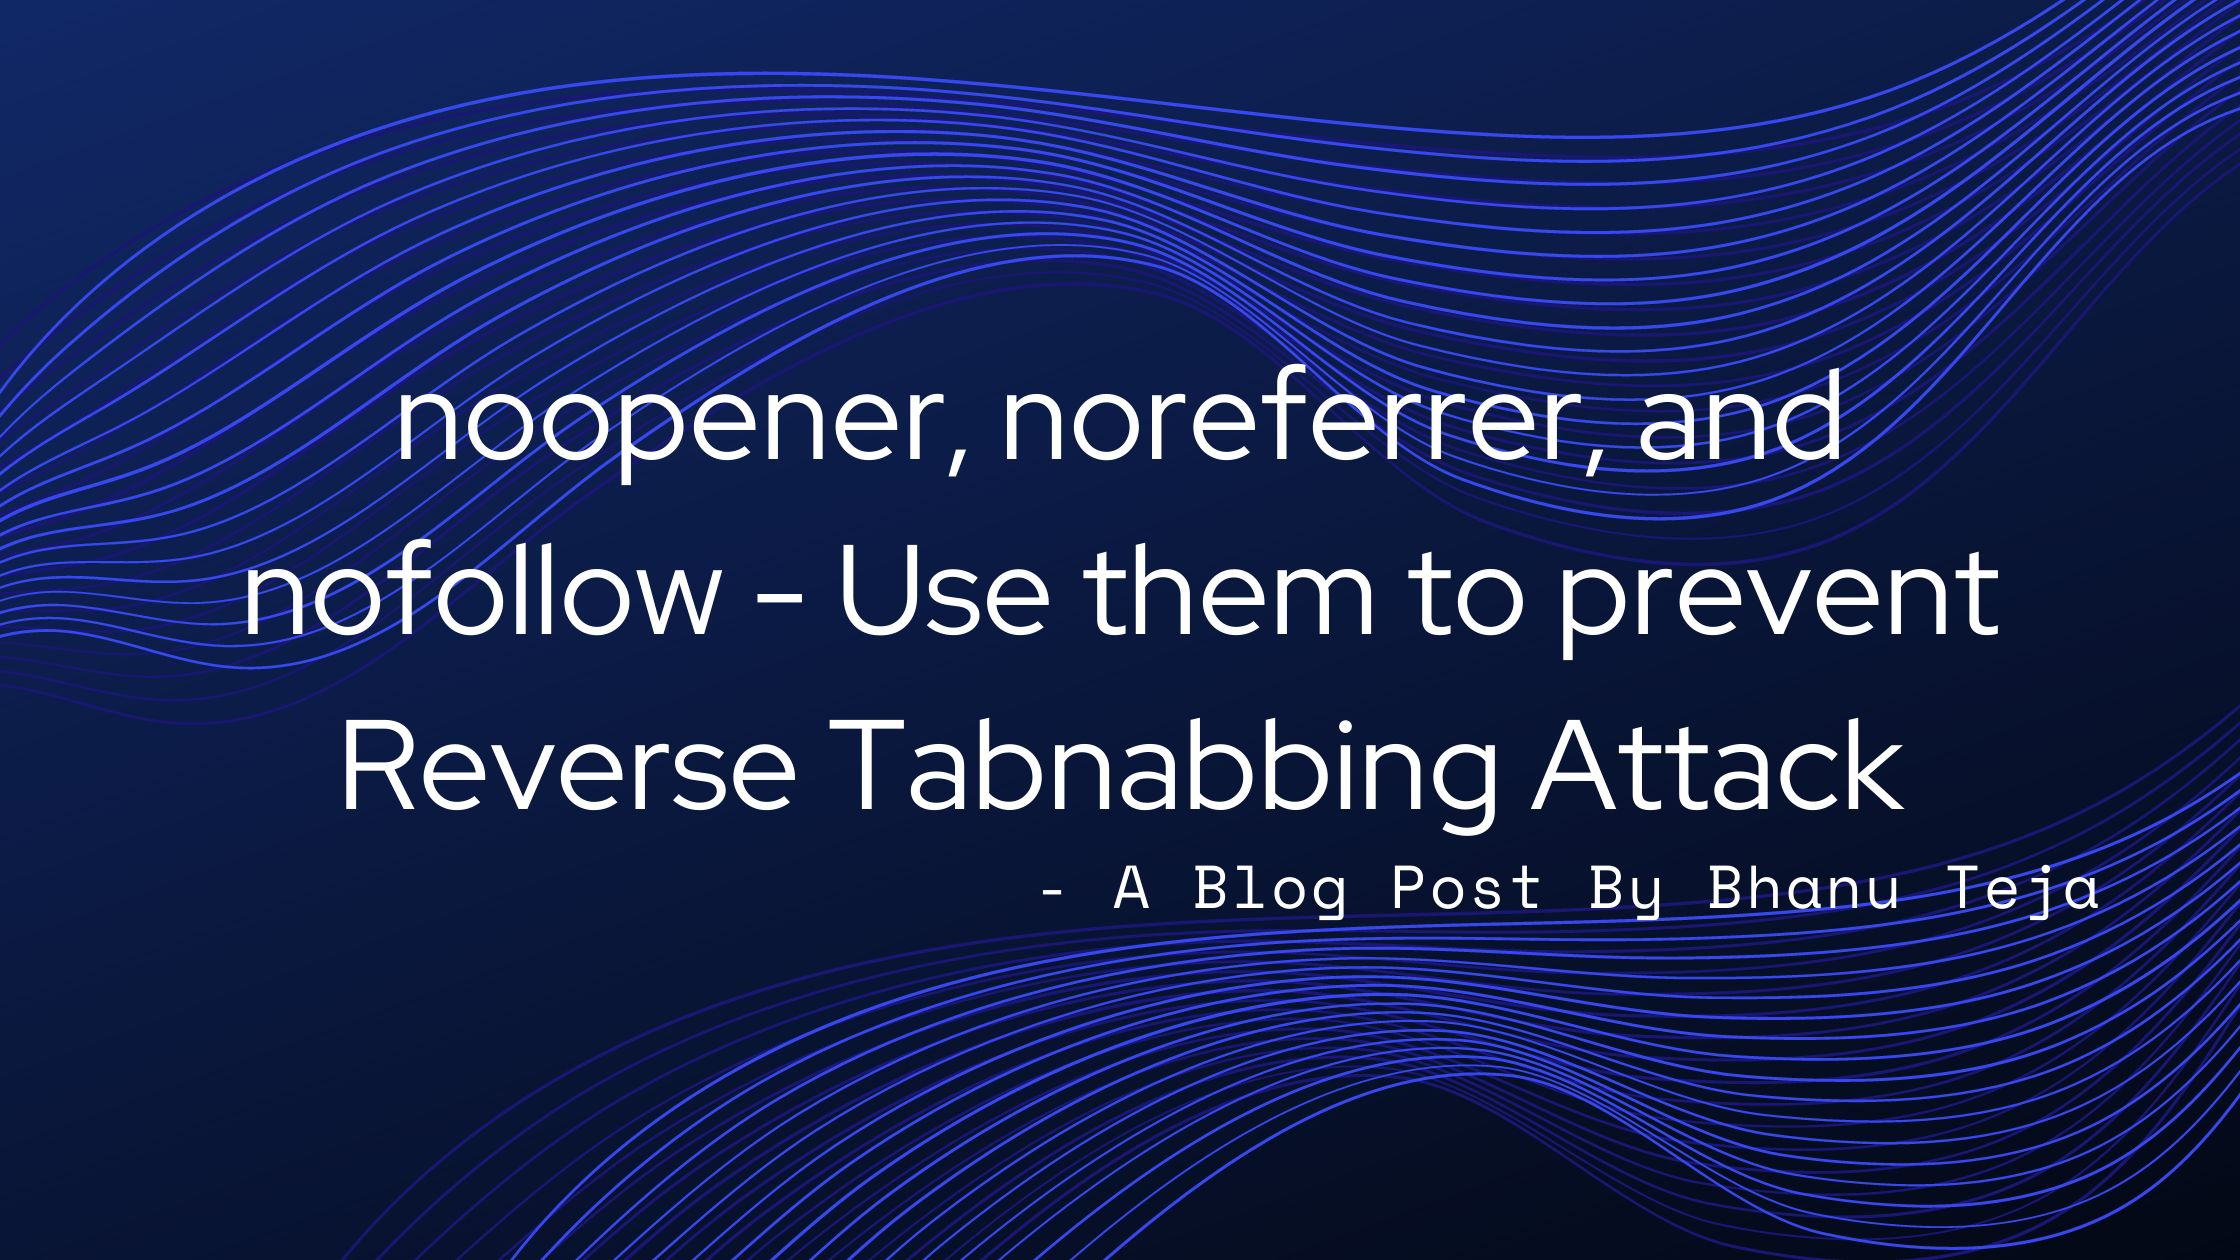 /prevent-reverse-tabnabbing-attacks-with-proper-noopener-noreferrer-and-nofollow-attribution-z14d3zbh feature image